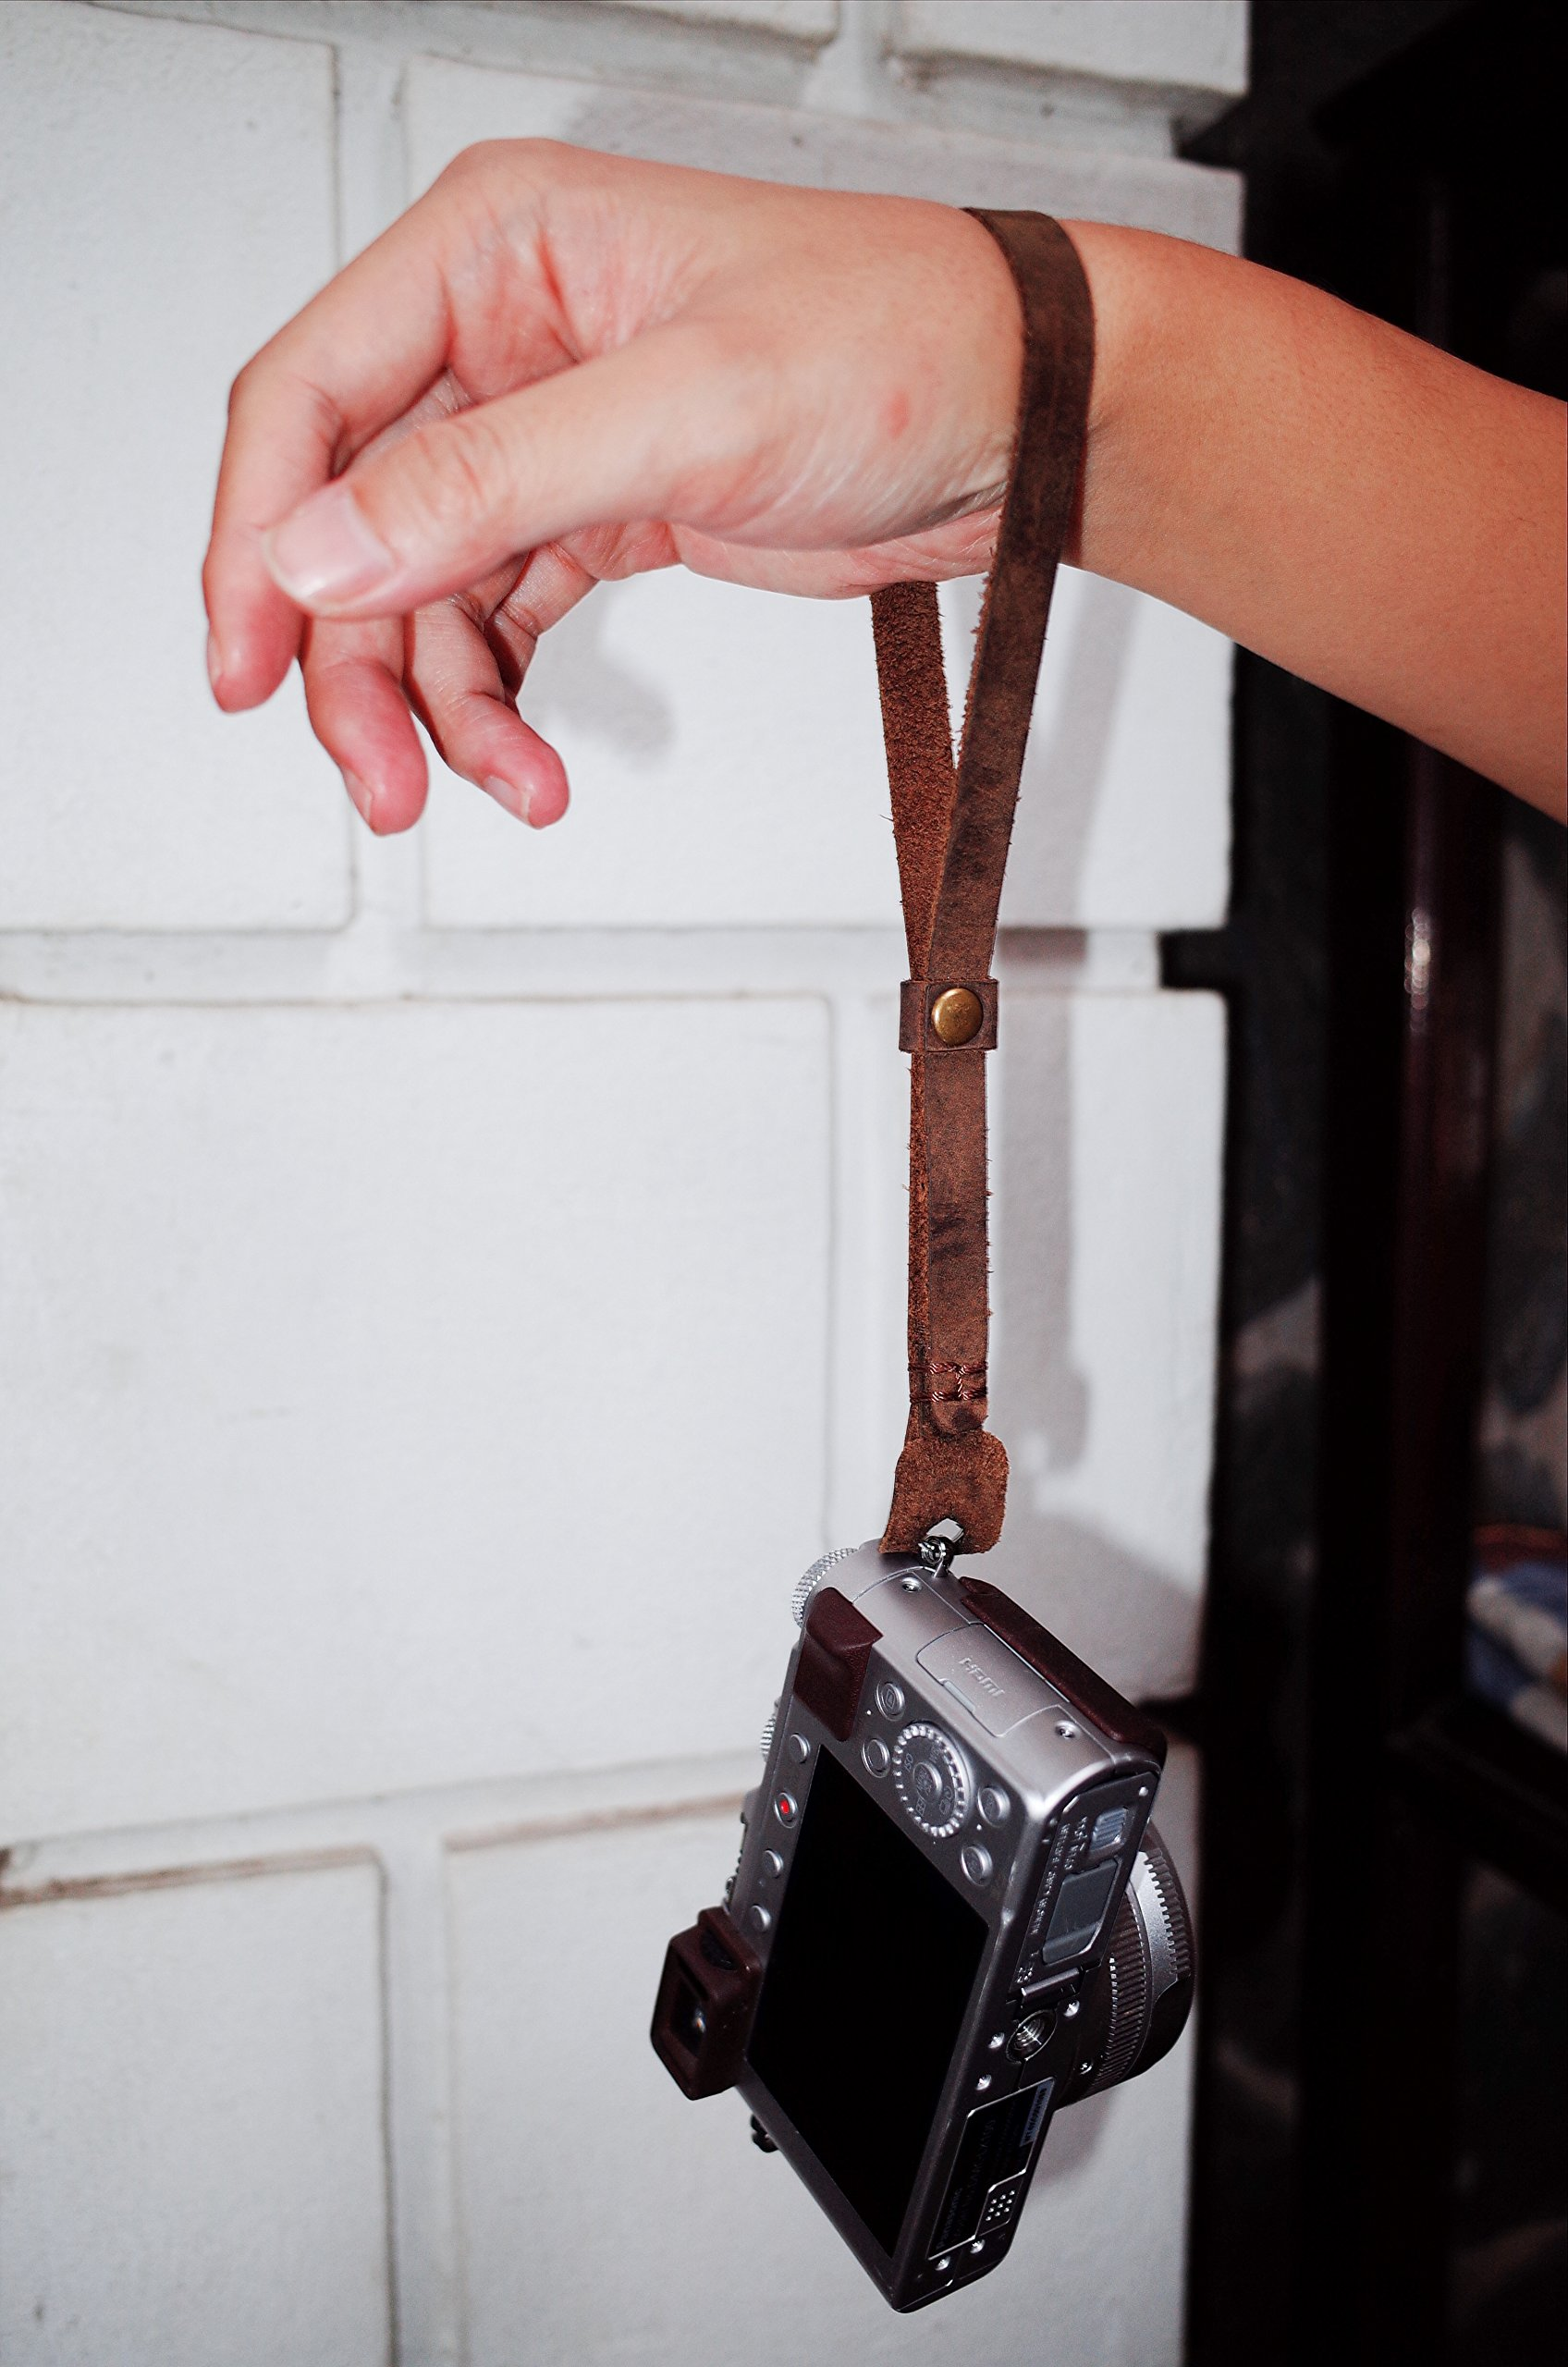 Henri by Eric Kim Handmade Premium Leather Camera Wrist Strap by Eric Kim Photography (Image #6)